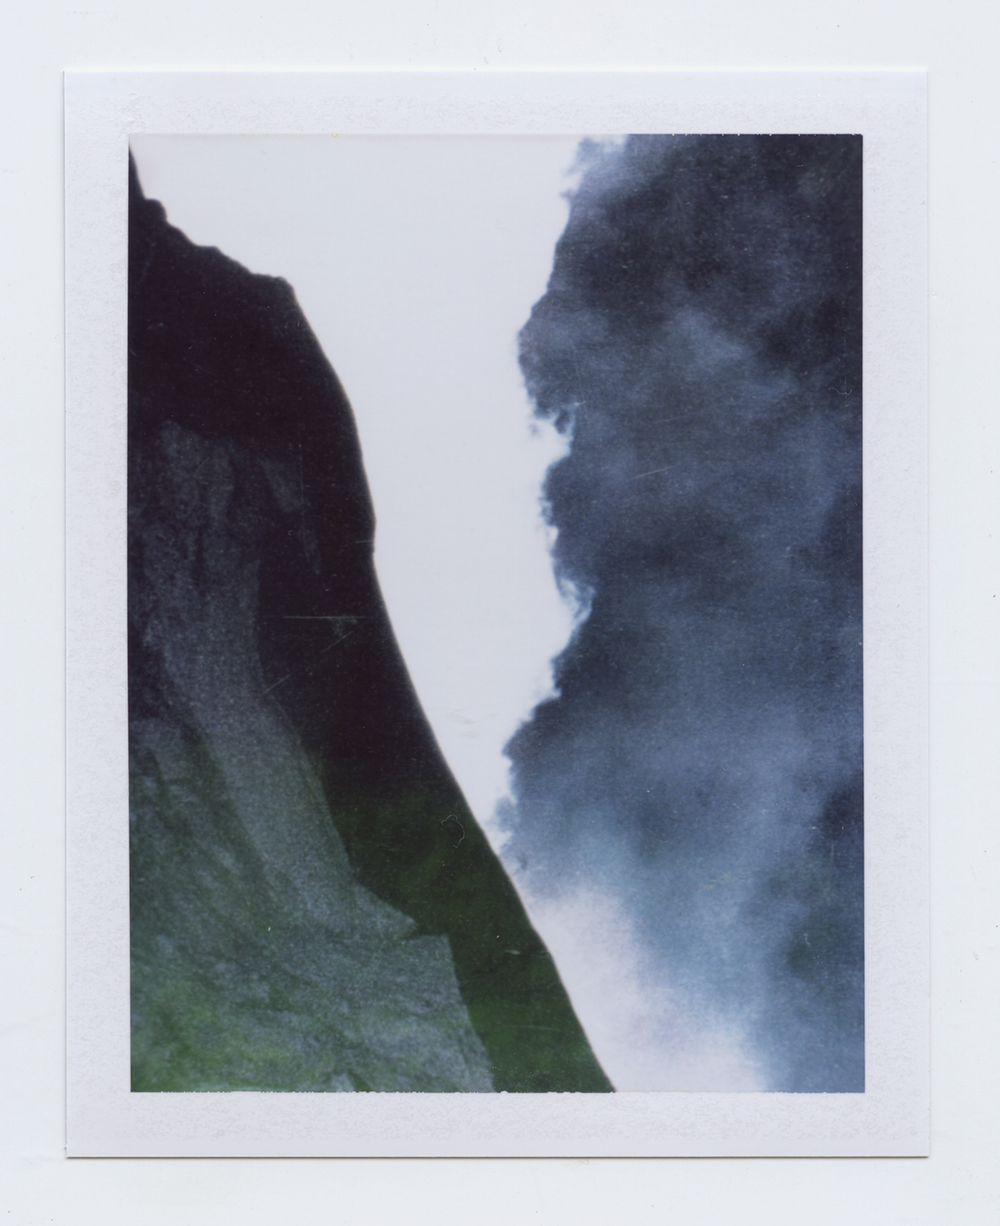 seeking composure  Polaroid of found National Geographic, 2015   Statement + Info